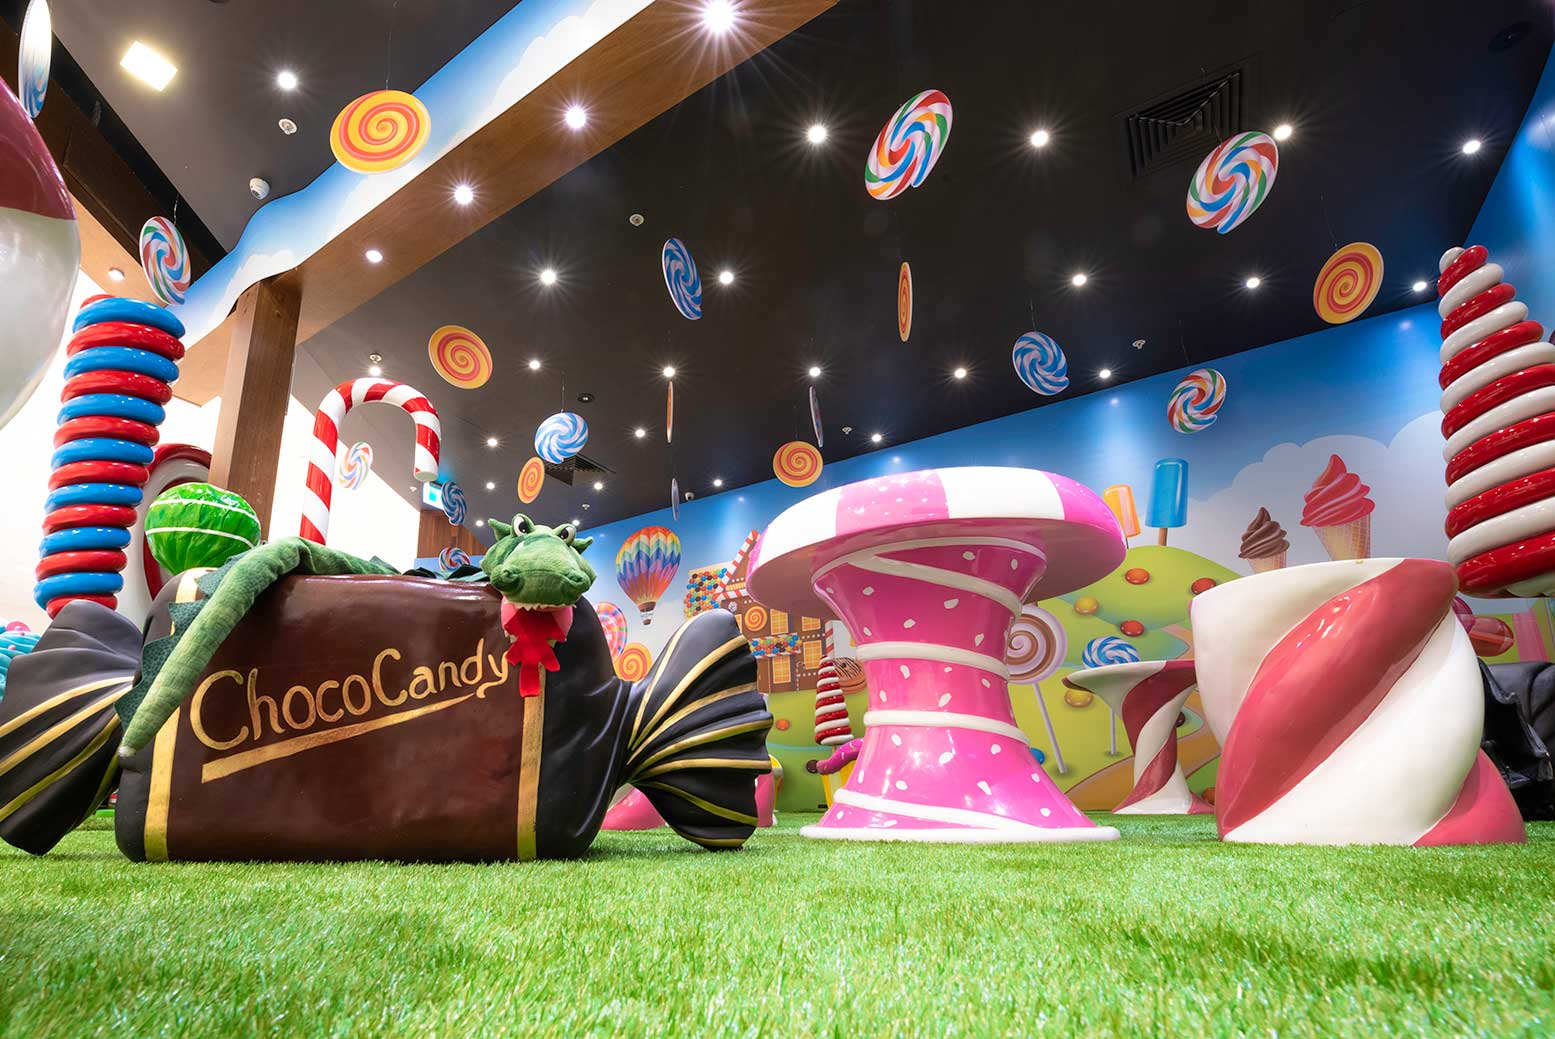 Candyland themed tenancy activation at Cockburn Gateway Shopping Centre